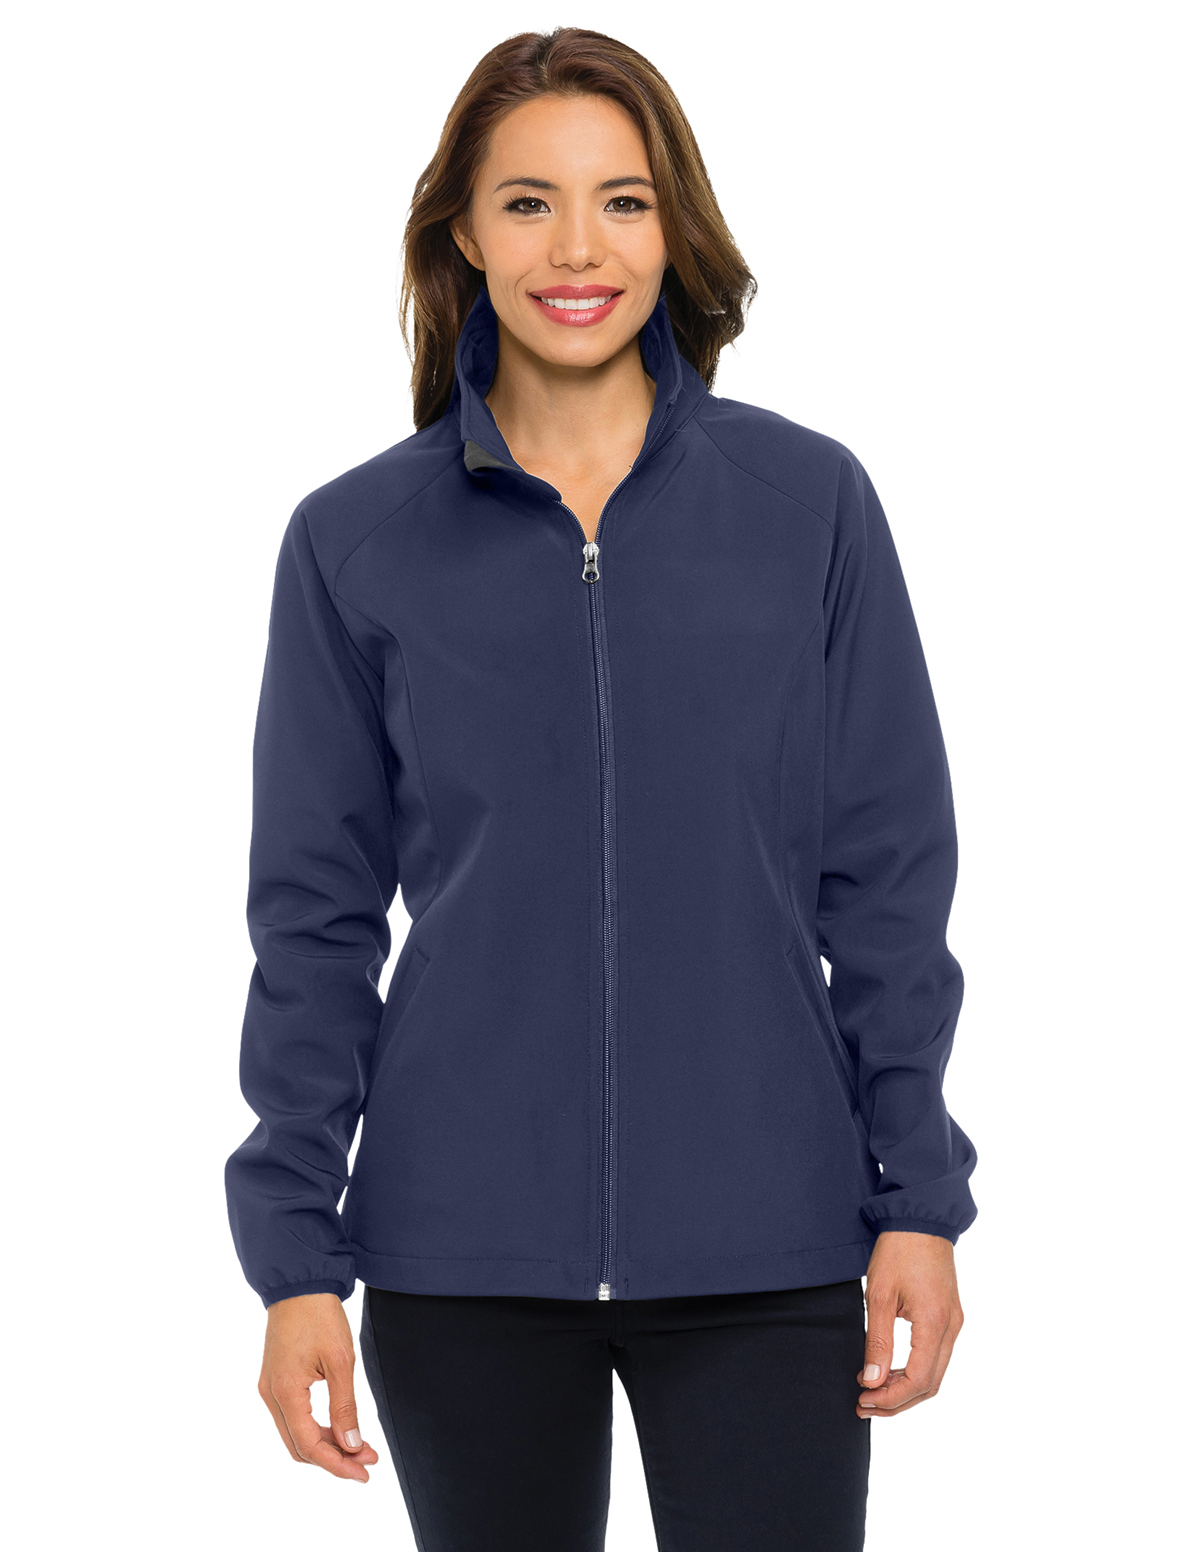 click to view NAVY / CHARCOAL